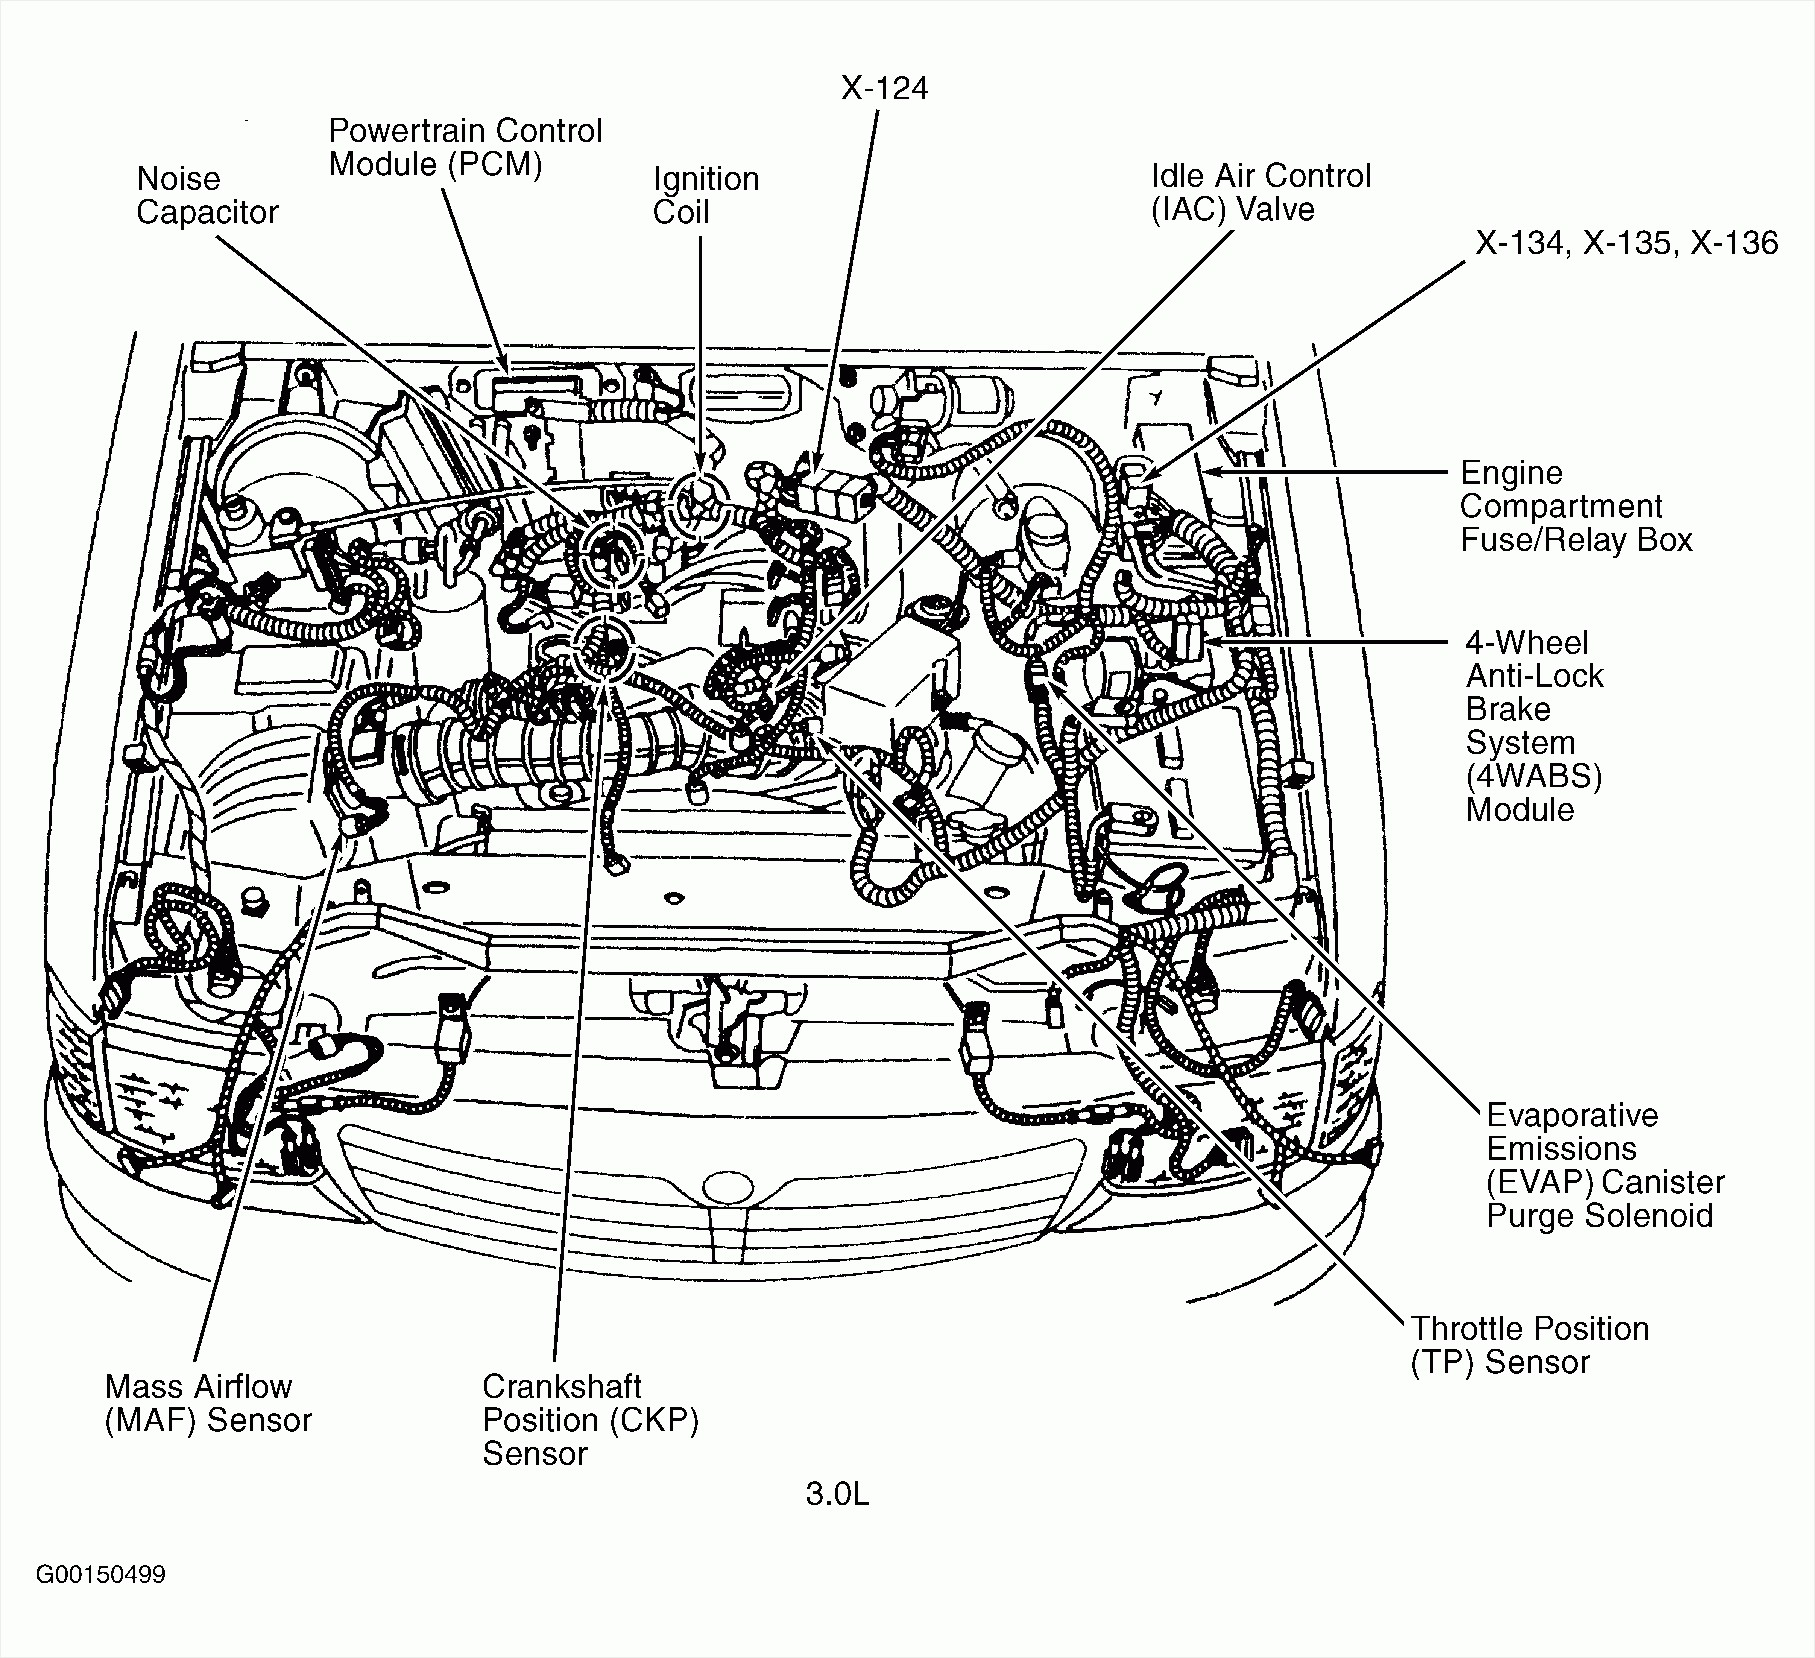 [QMVU_8575]  Diagram Of 2003 Vw Bug Engine - Wiring Diagrams | 1998 Vw Passat 2 0 Engine Diagram |  | karox.fr